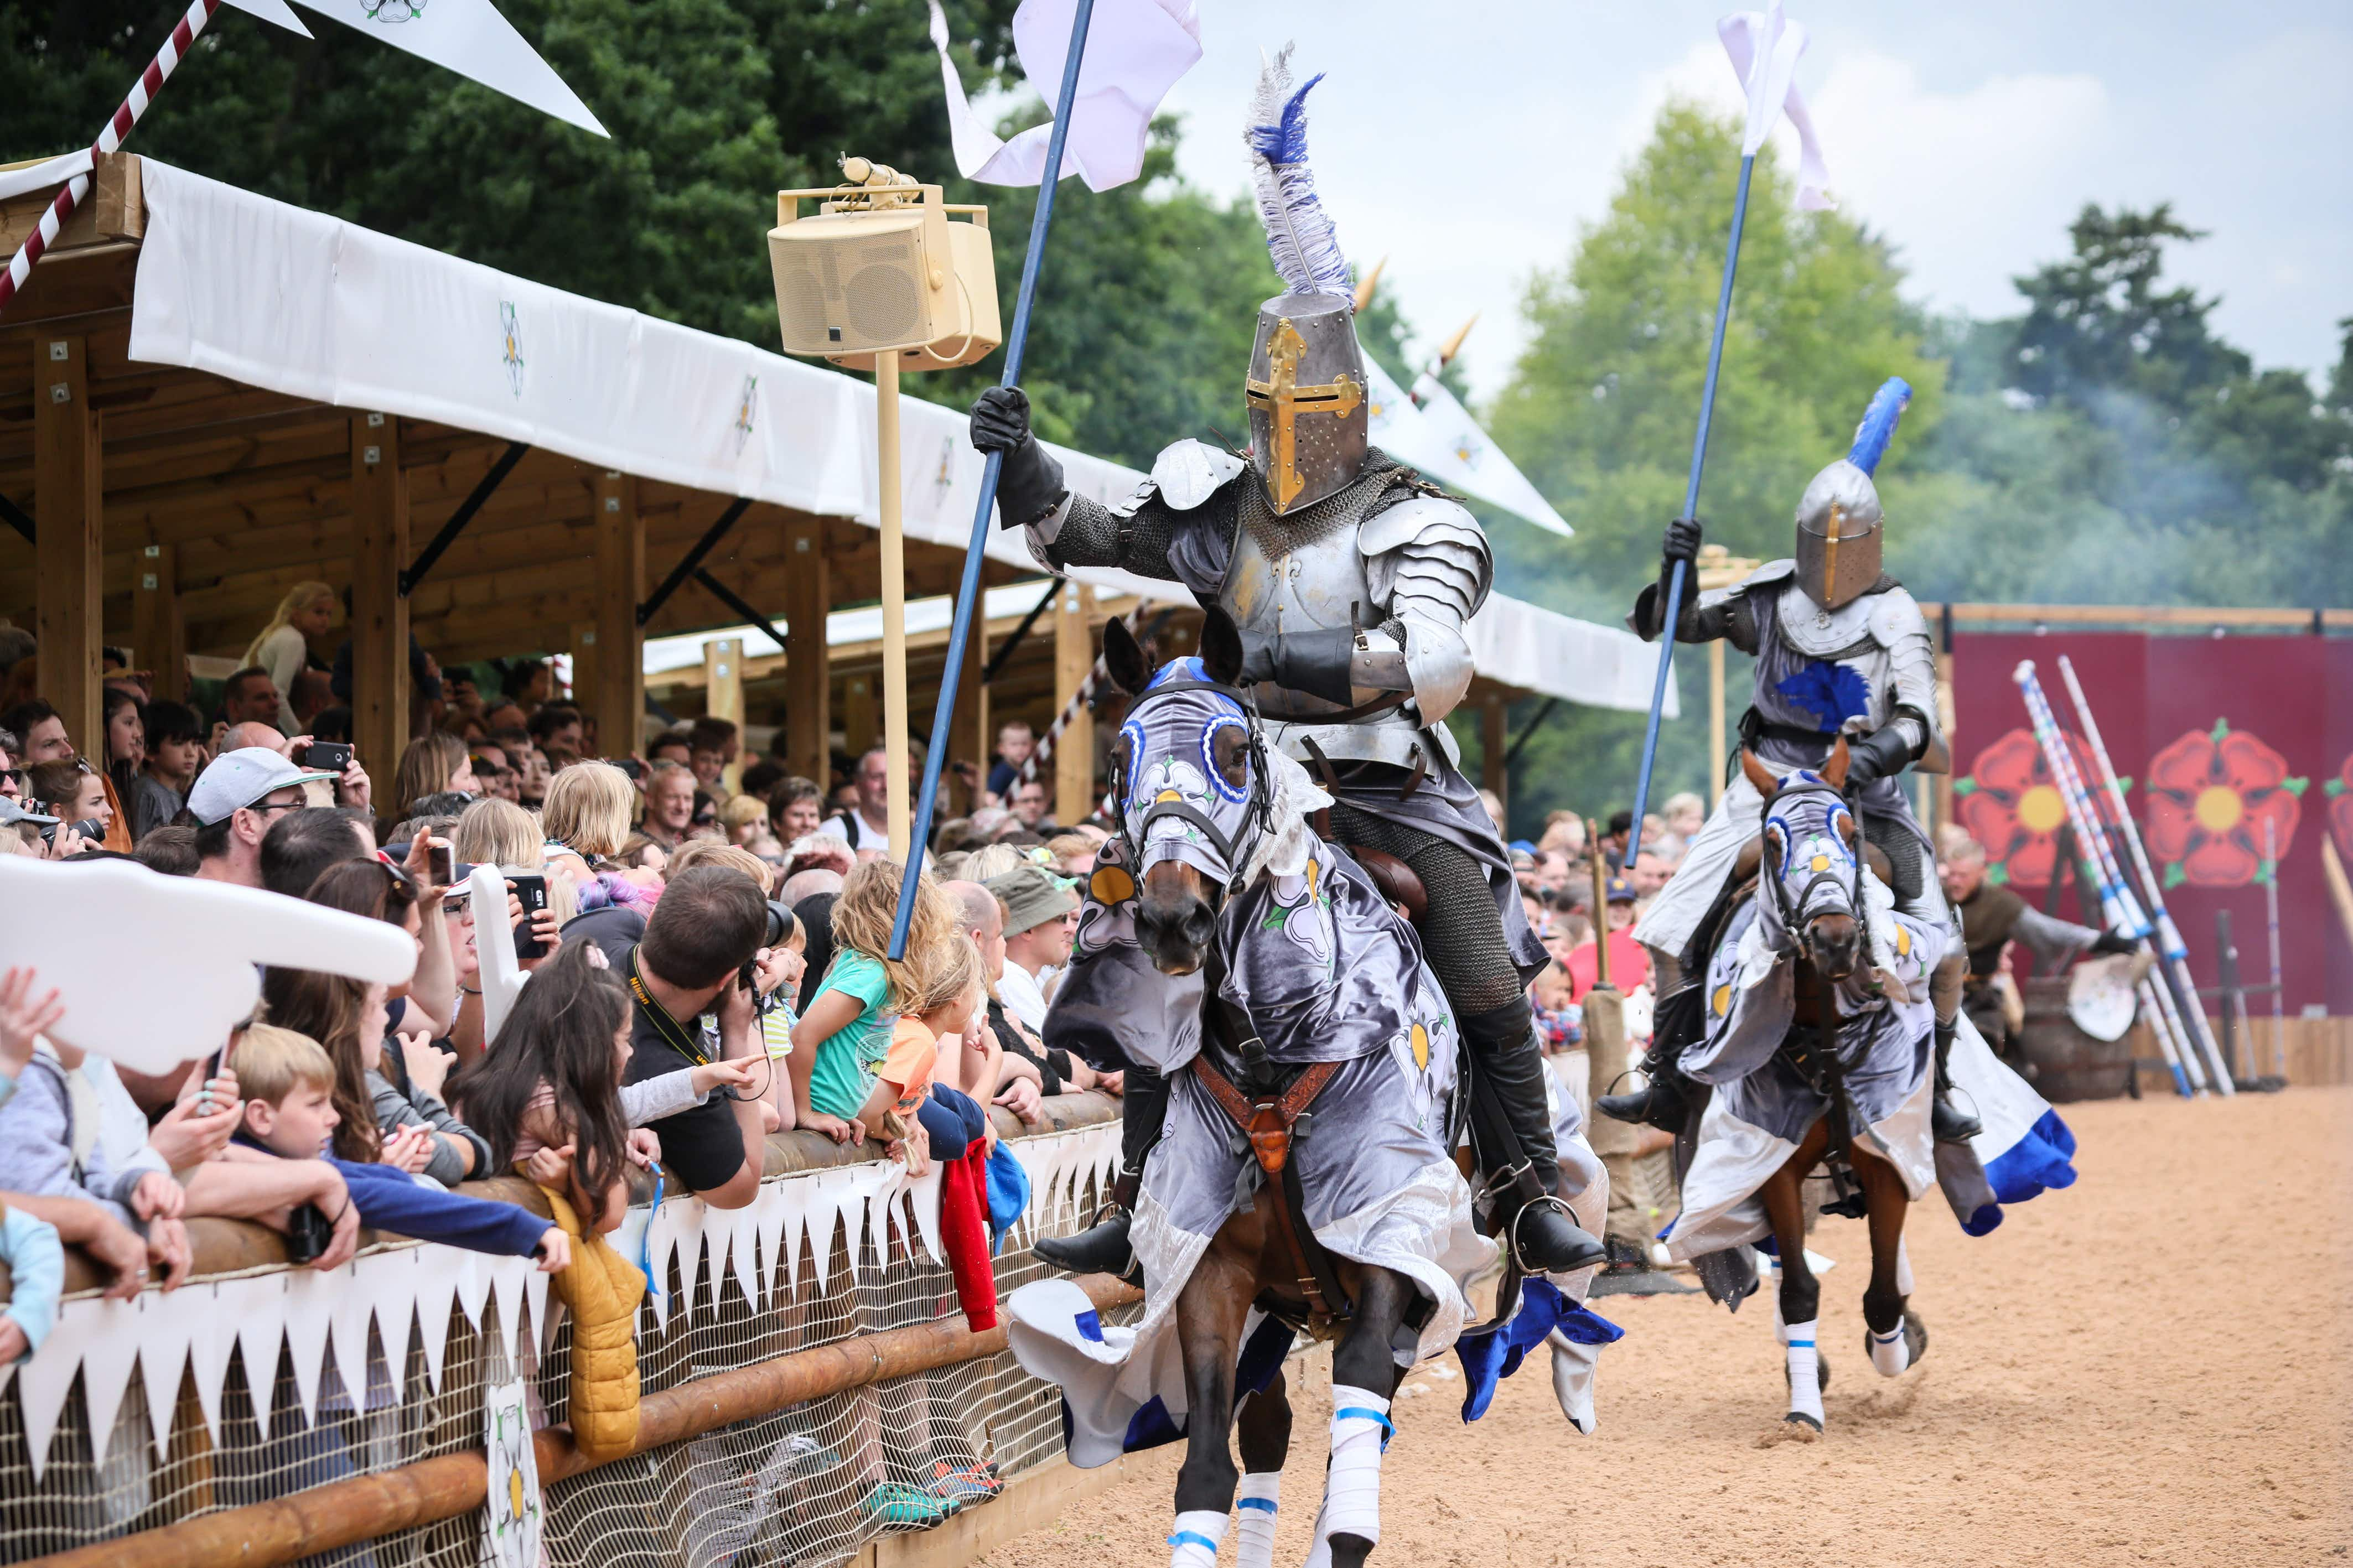 It inspired Shakespeare and Game of Thrones - now the Wars of the Roses will be re-enacted